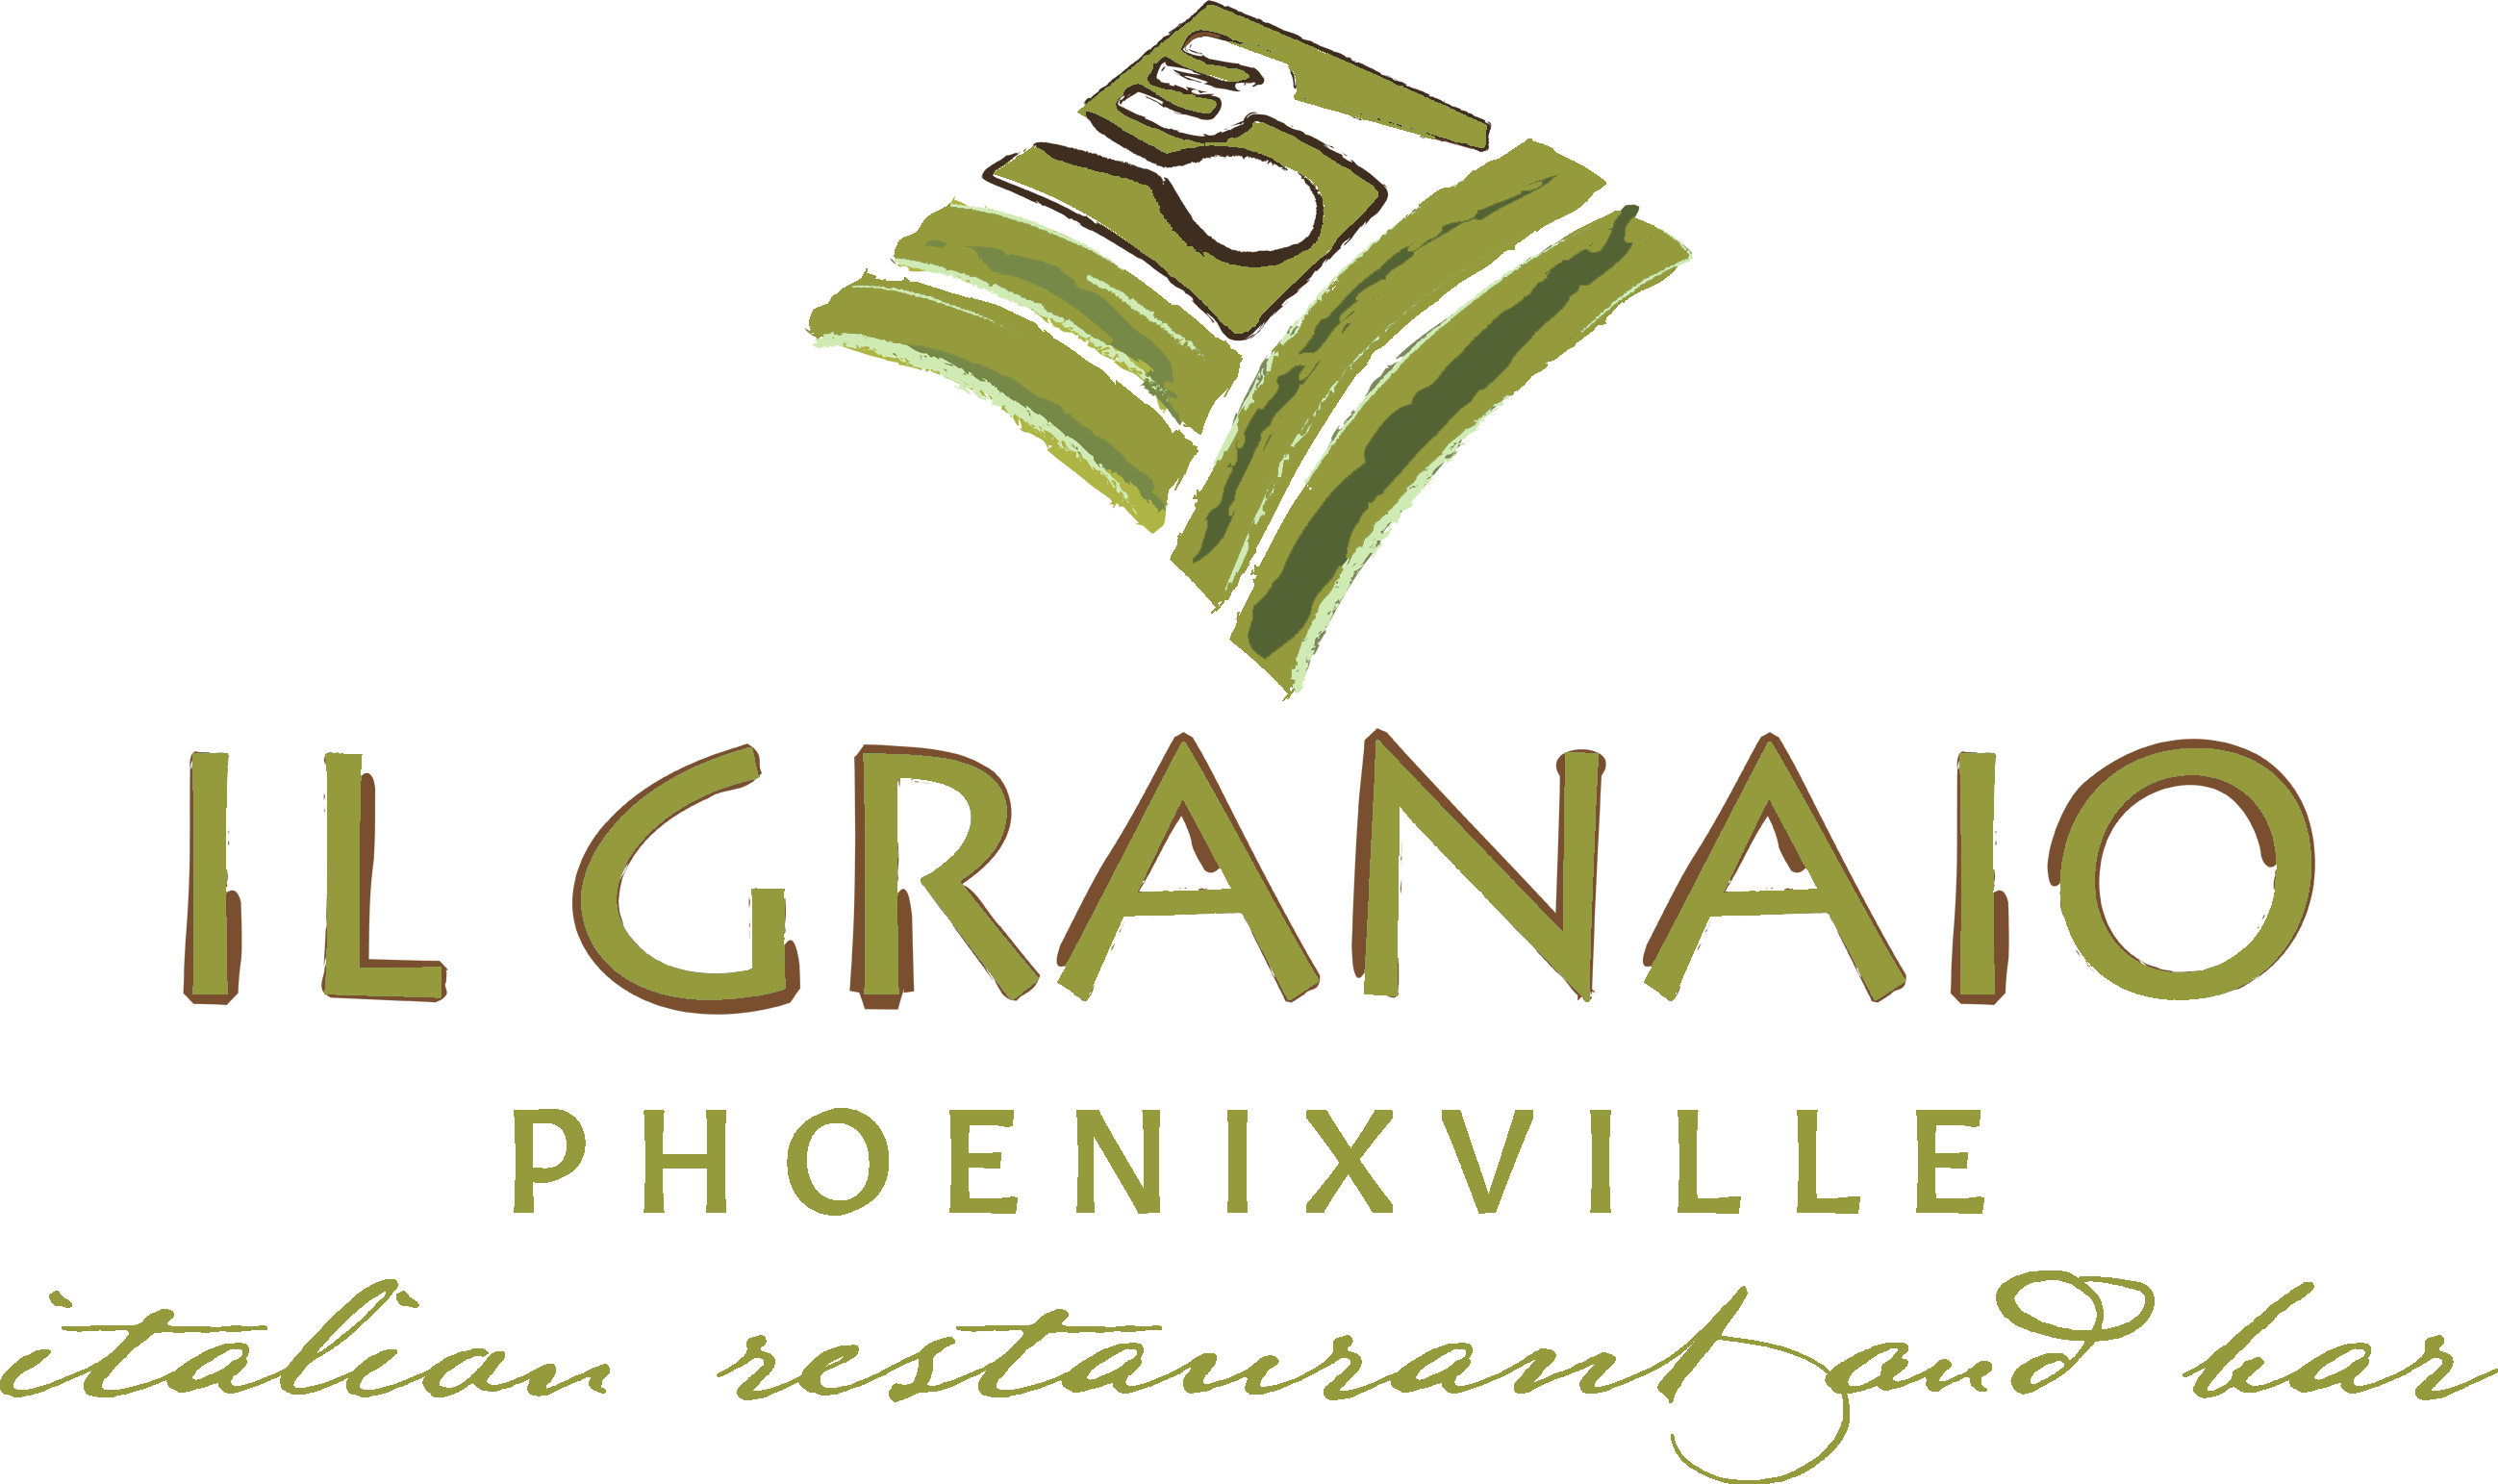 ilgranaio Phoenixville lunch menu